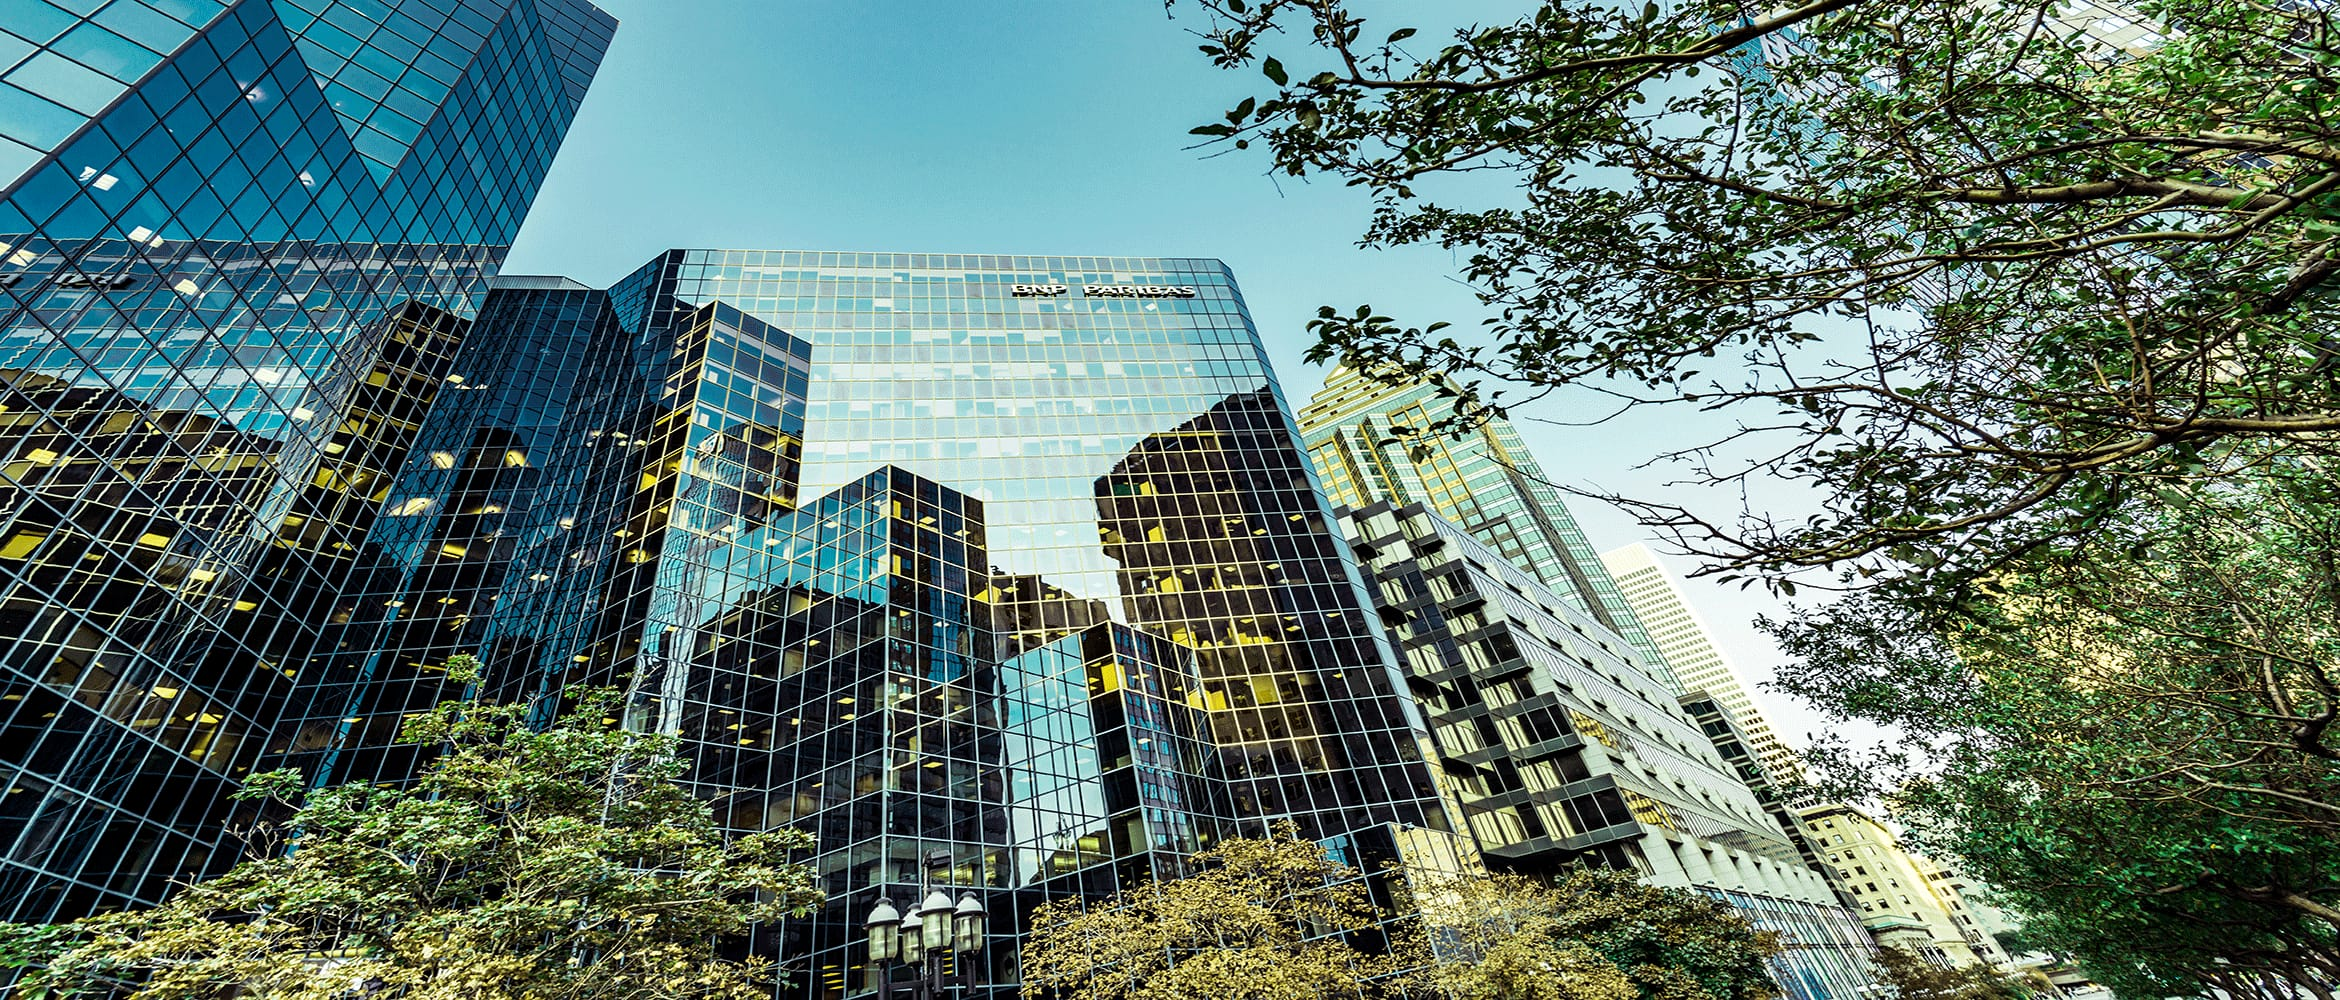 Glass windows of a skyscraper showing reflections of other buildings, viewed through trees from the ground